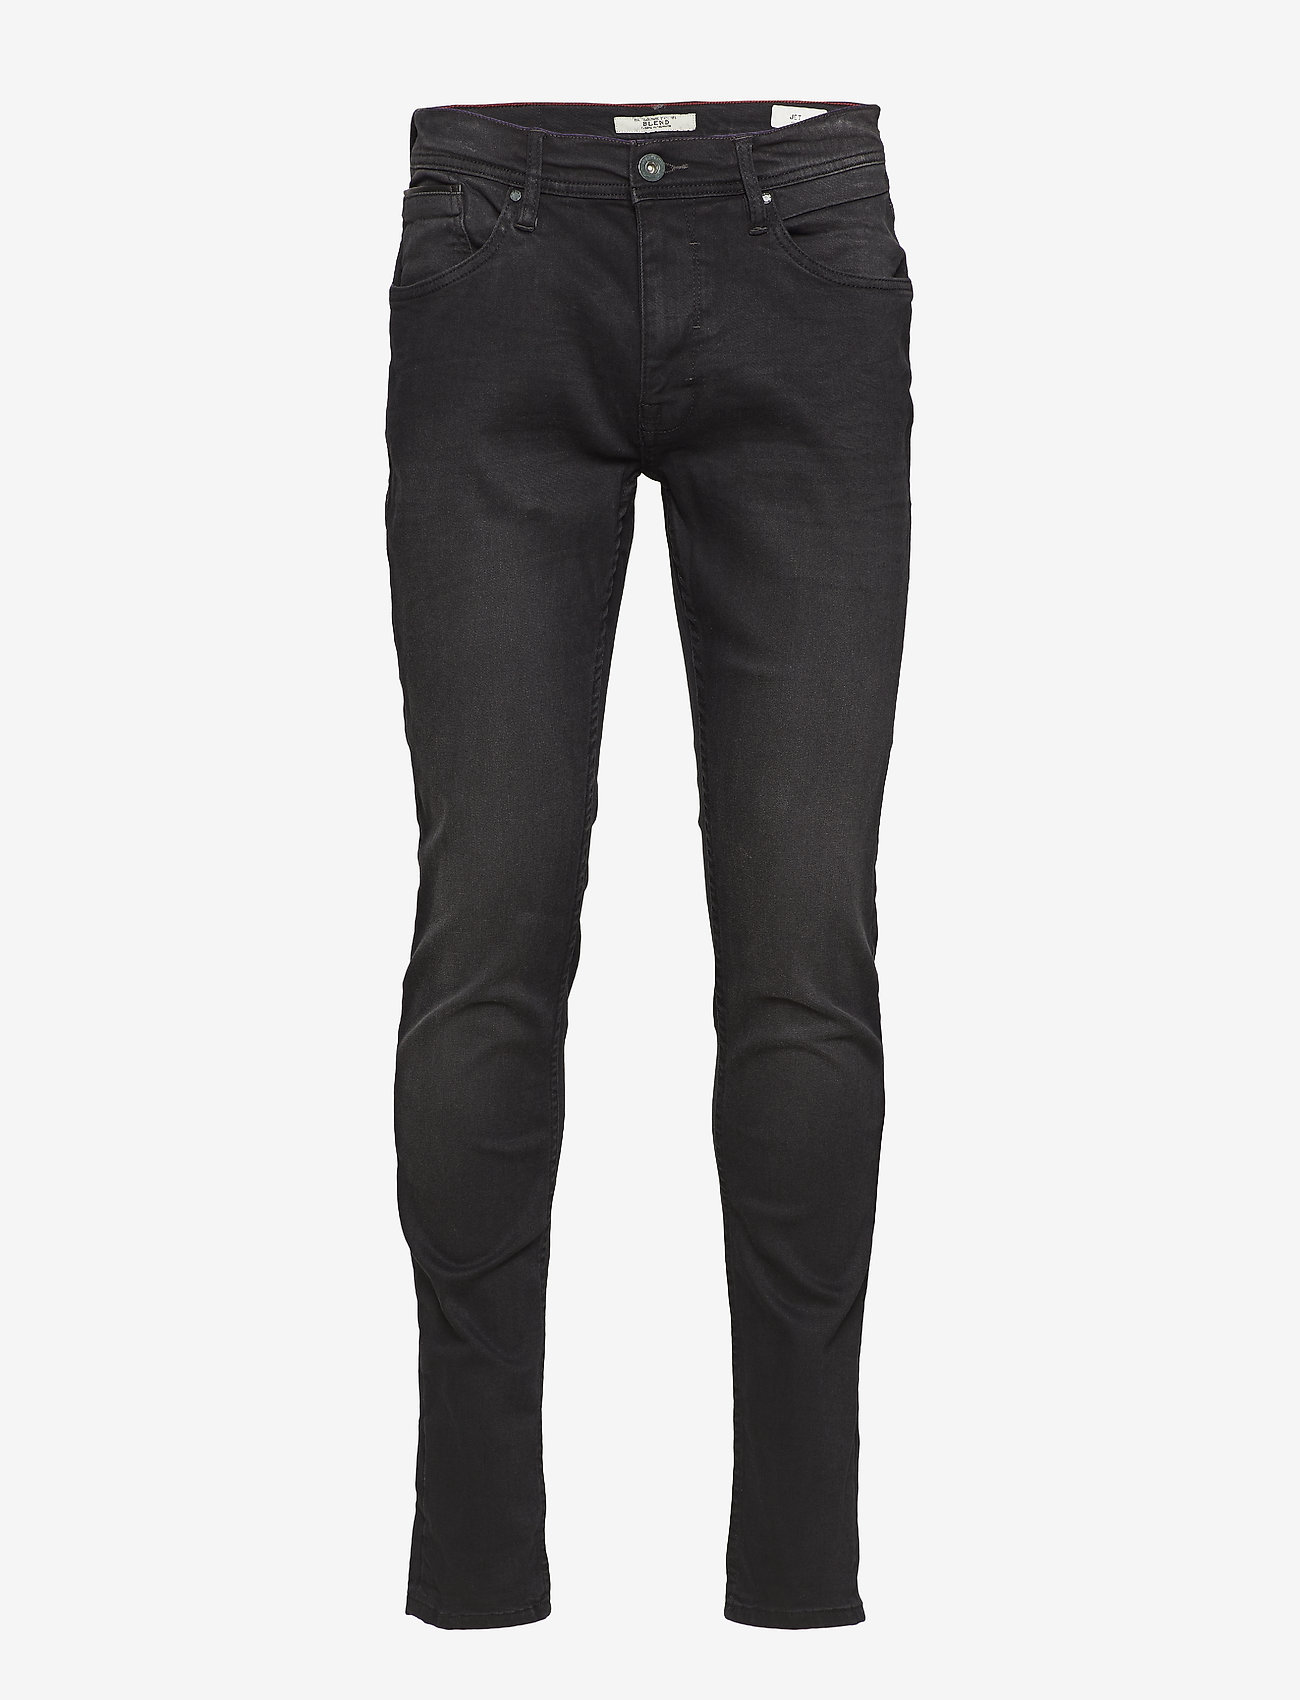 Blend - Jet fit - NOOS Jeans - slim jeans - denim black - 0